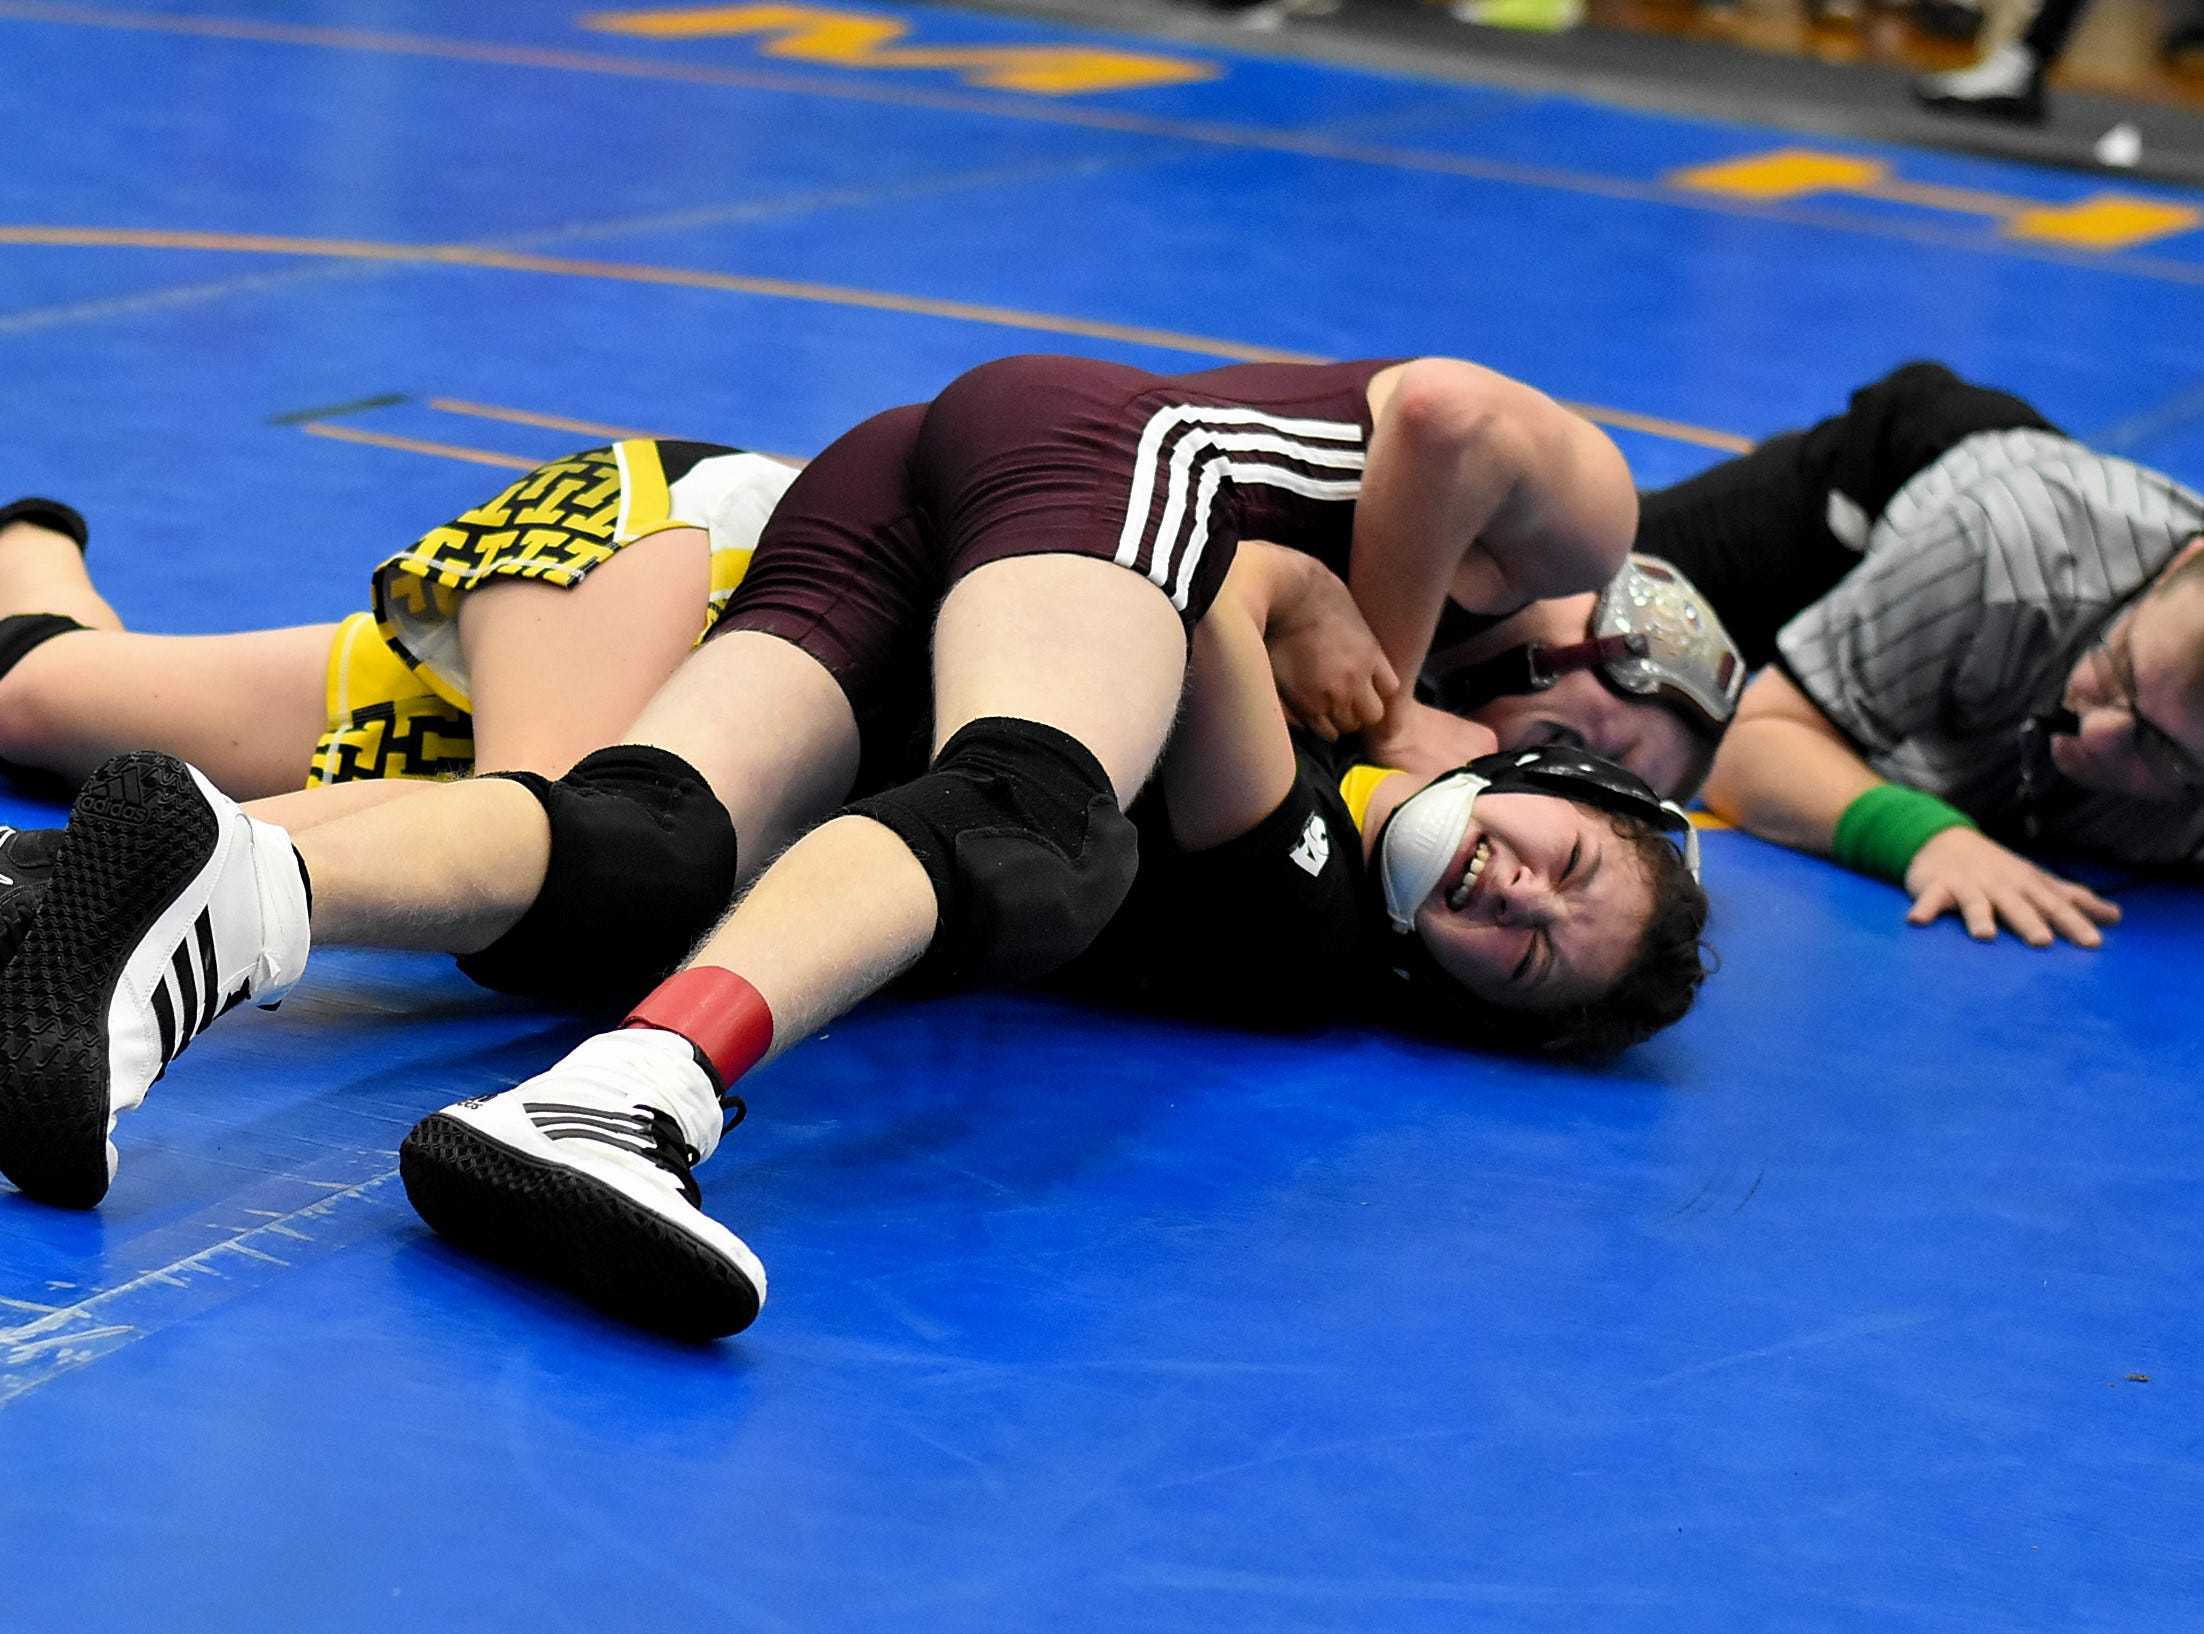 Taylor Schmidt of Hillcrest pins Cerenity Bergeron of Taylor in the first round at the Bob Kearns Madeira Invitational, January 4, 2019.